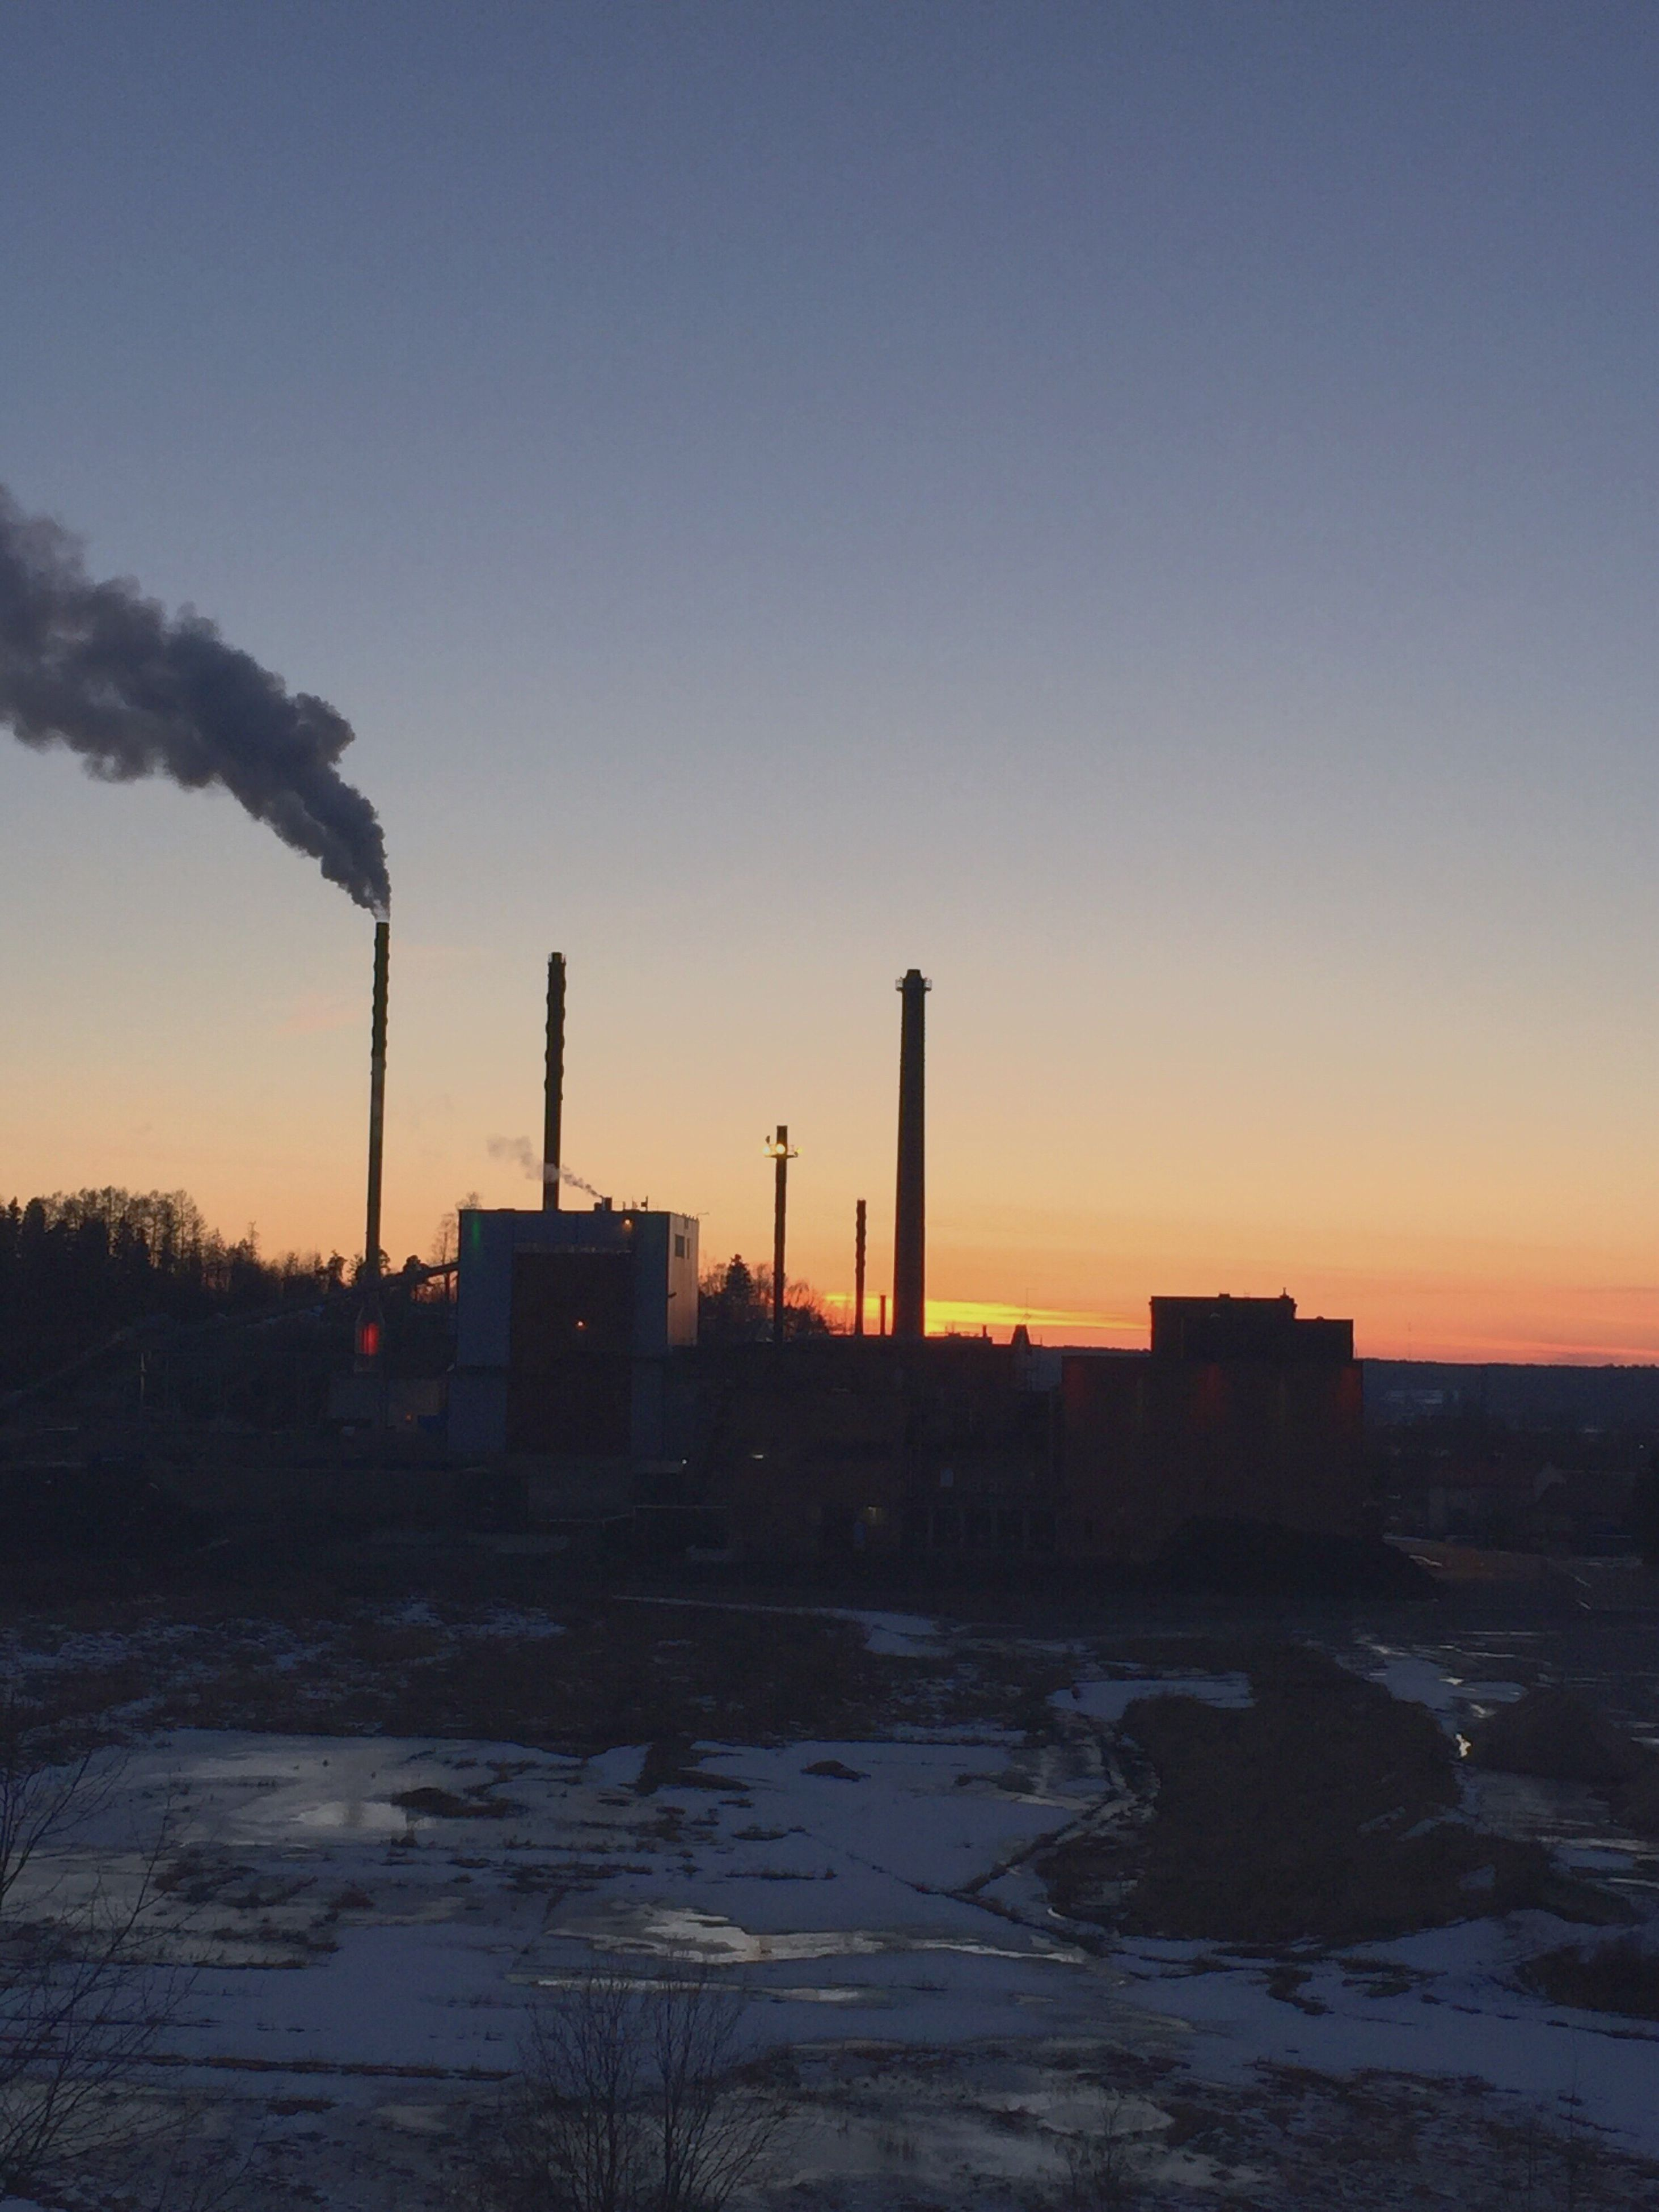 sunset, built structure, building exterior, architecture, orange color, copy space, clear sky, water, sky, industry, silhouette, nature, no people, smoke stack, outdoors, sea, dusk, beauty in nature, tranquility, scenics